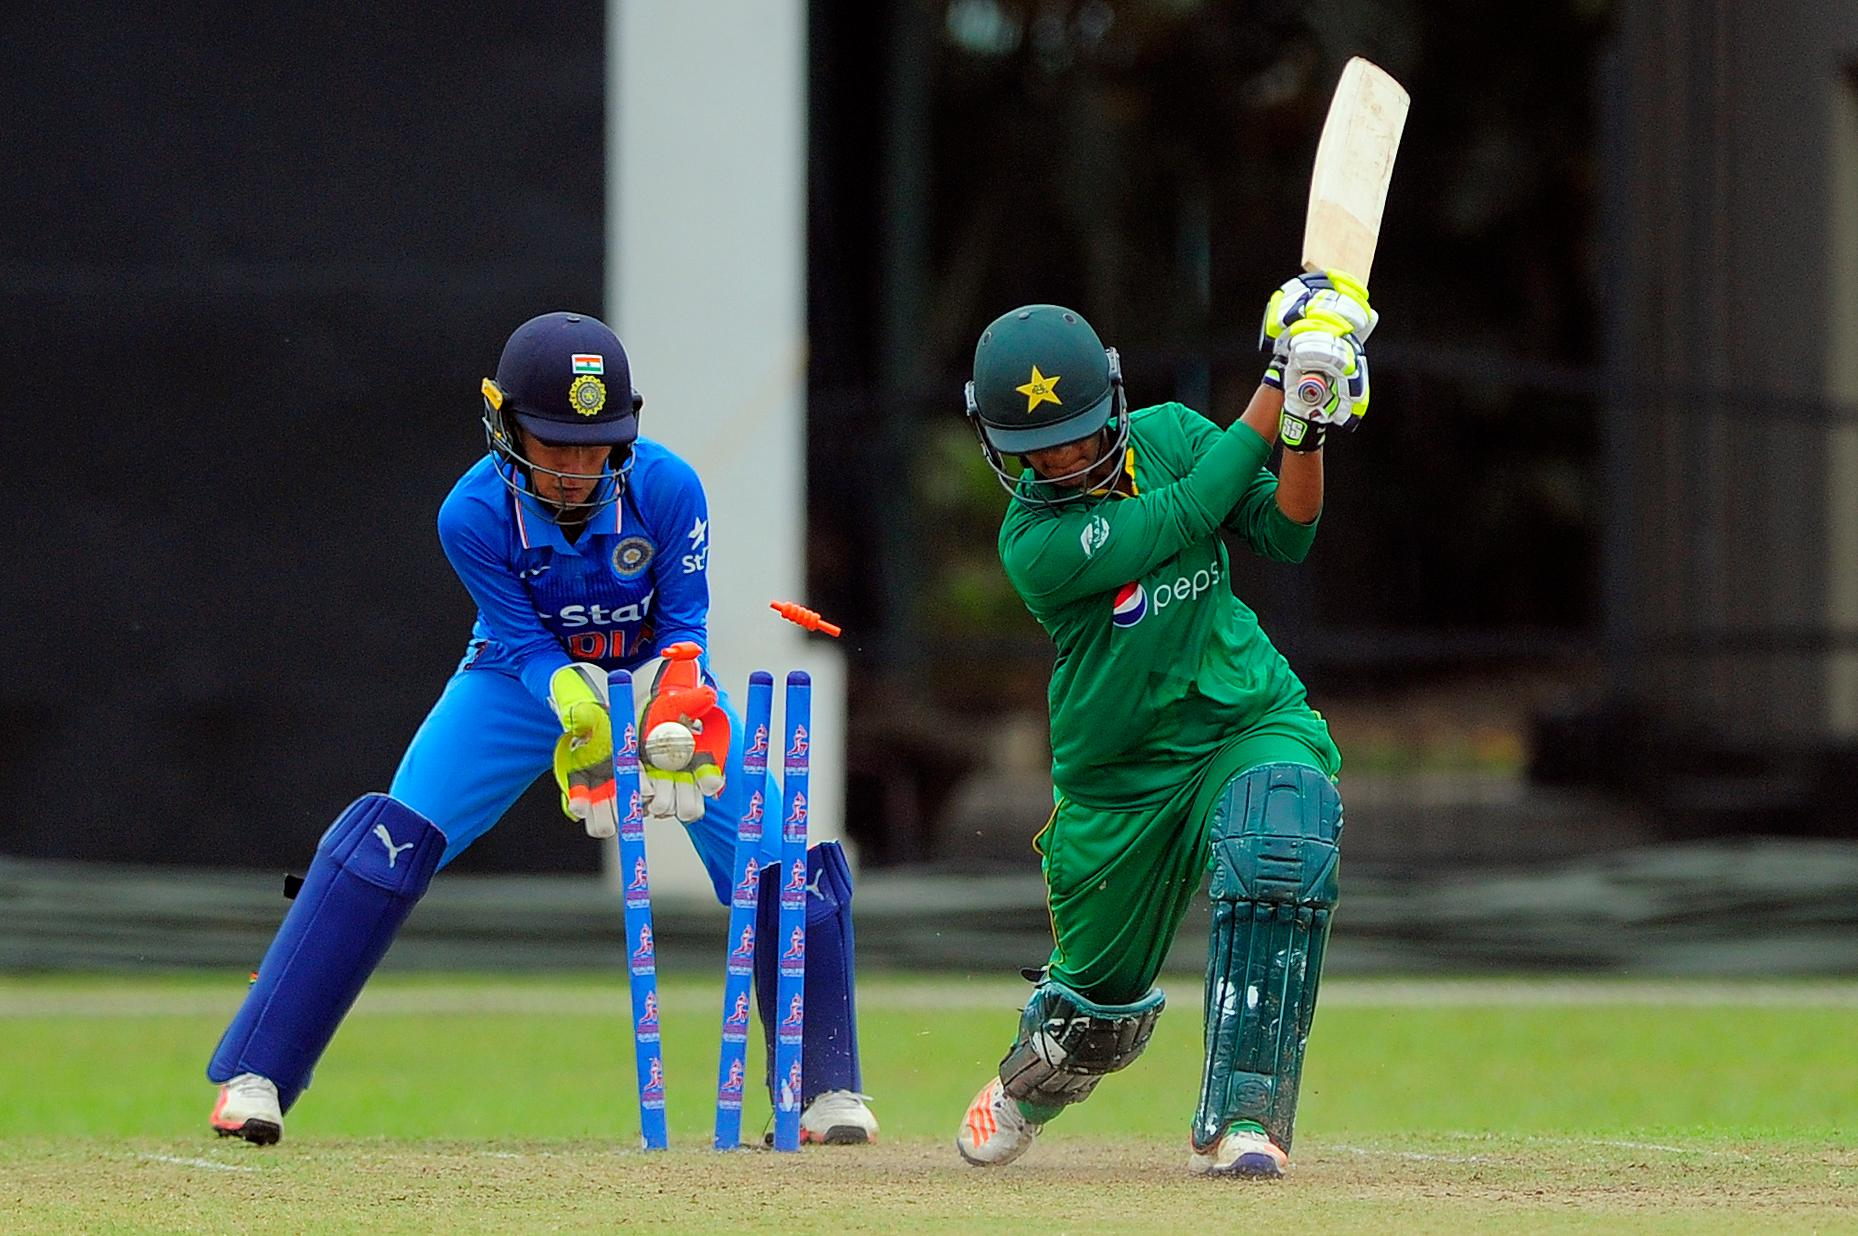 Icc Women S World Cup Qualifier Top Moments Of Day 13